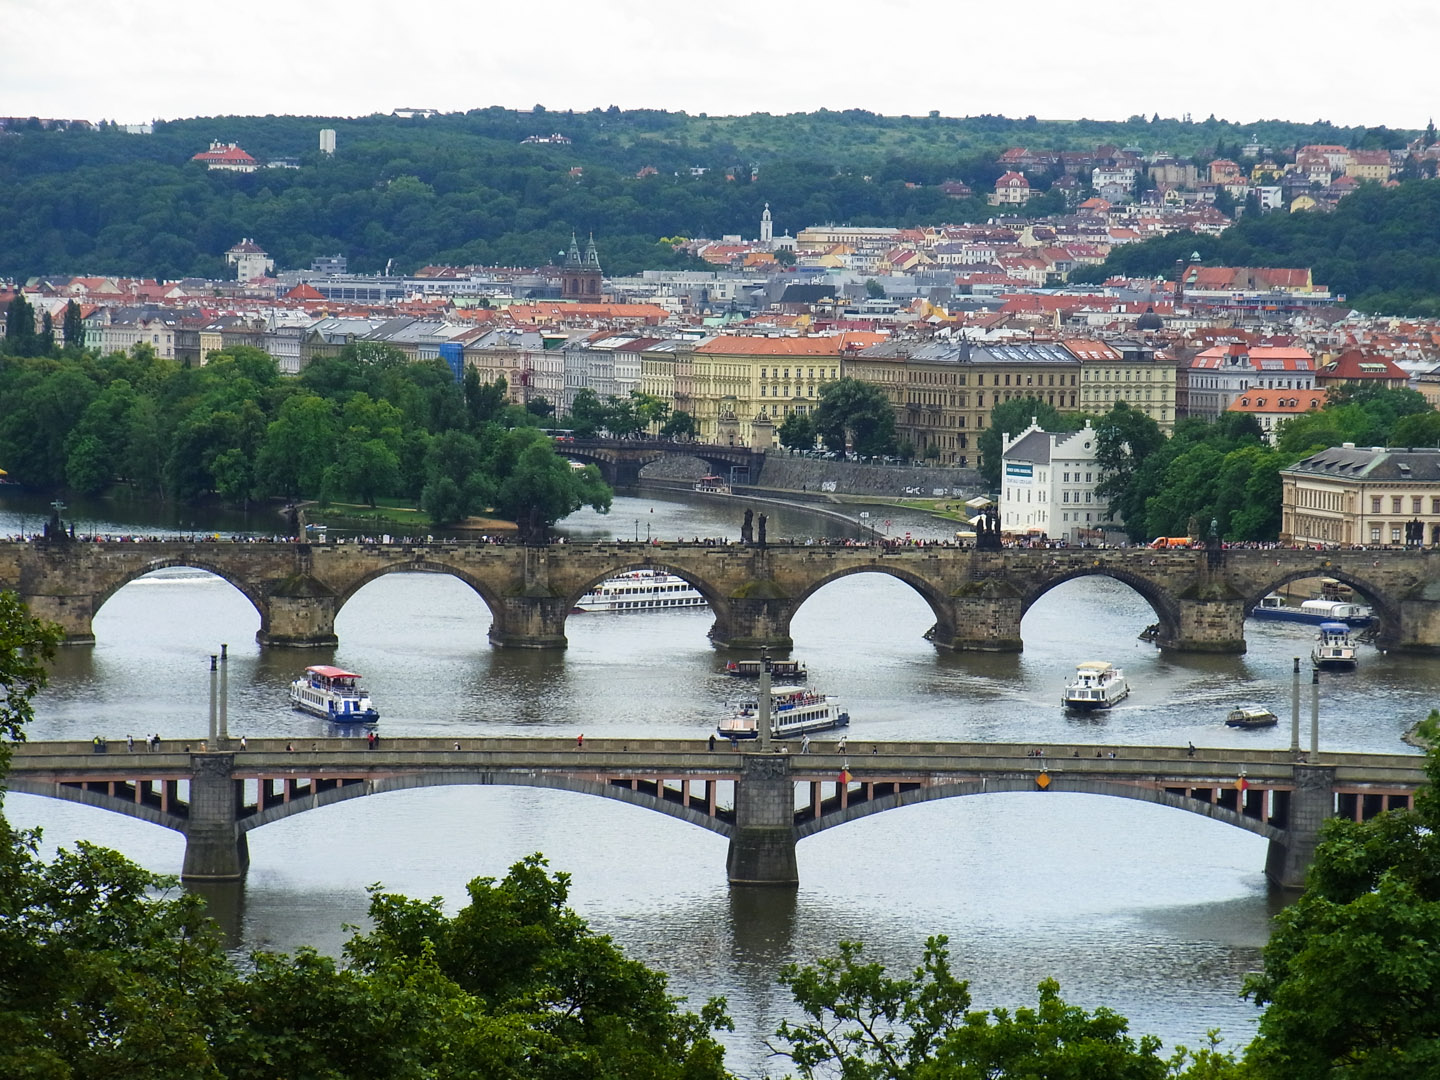 Vltava River from From Letná Hill